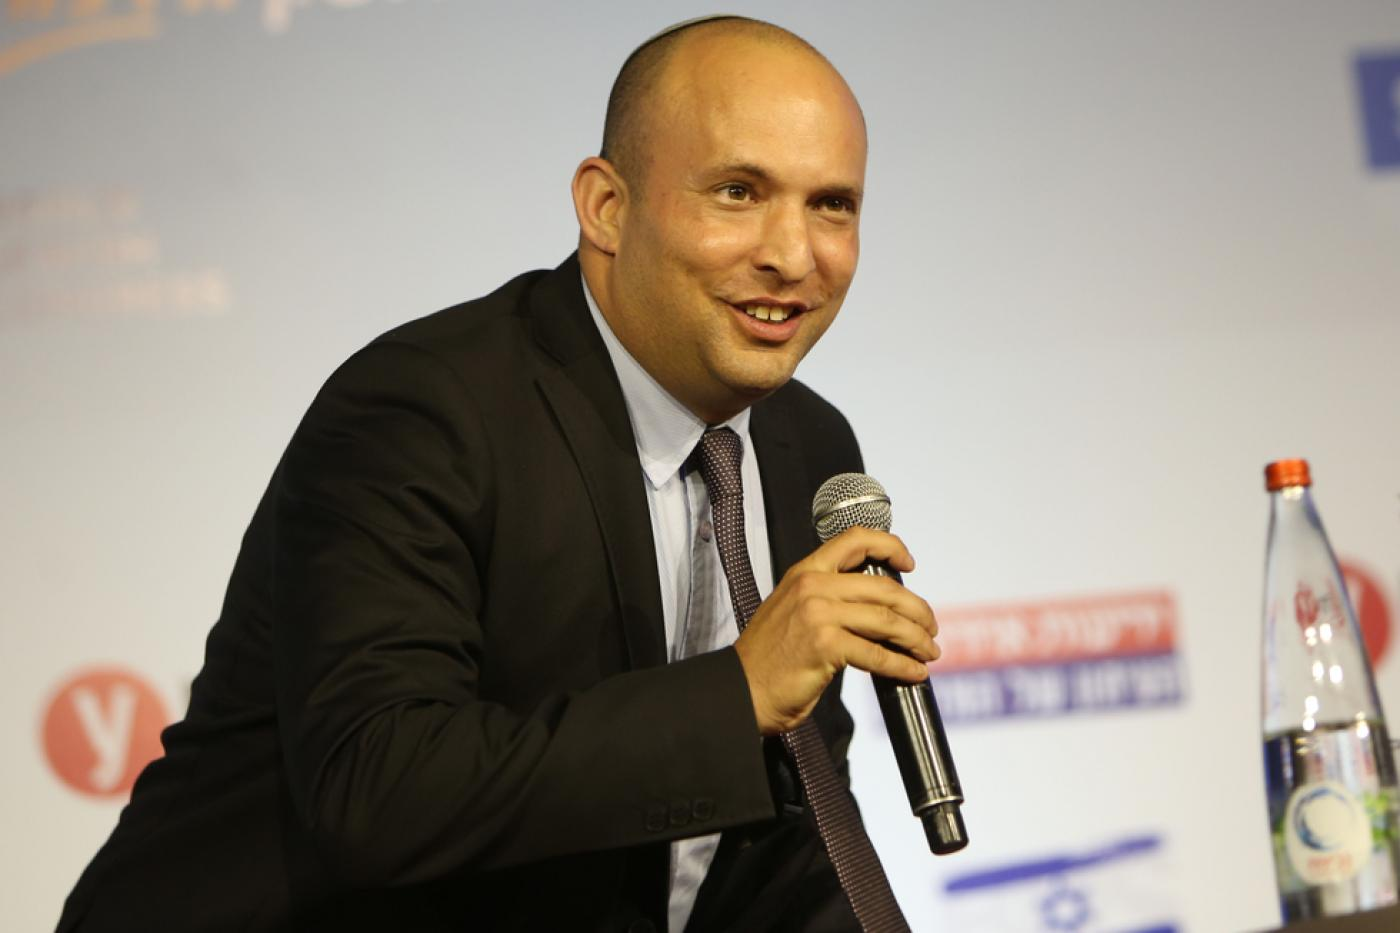 Naftali Bennett hopes HaYamin HaChadash will capture centre-right voters disillusioned with Likud (AFP)